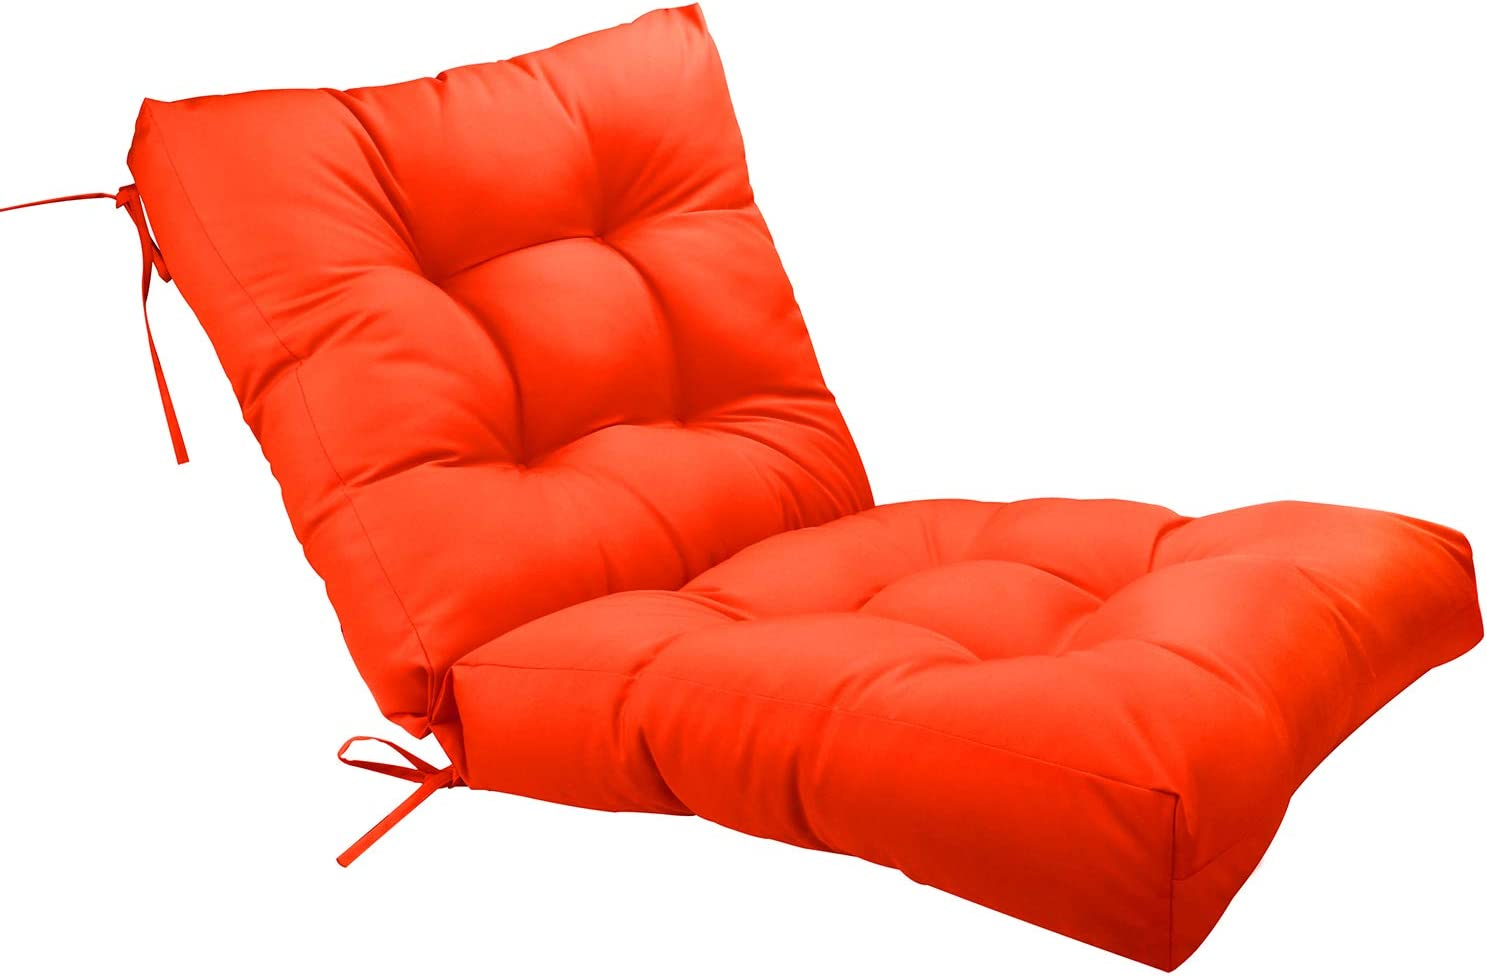 SewKer Outdoor Seat Our shop OFFers the Japan's largest assortment best service Back Chair x 20